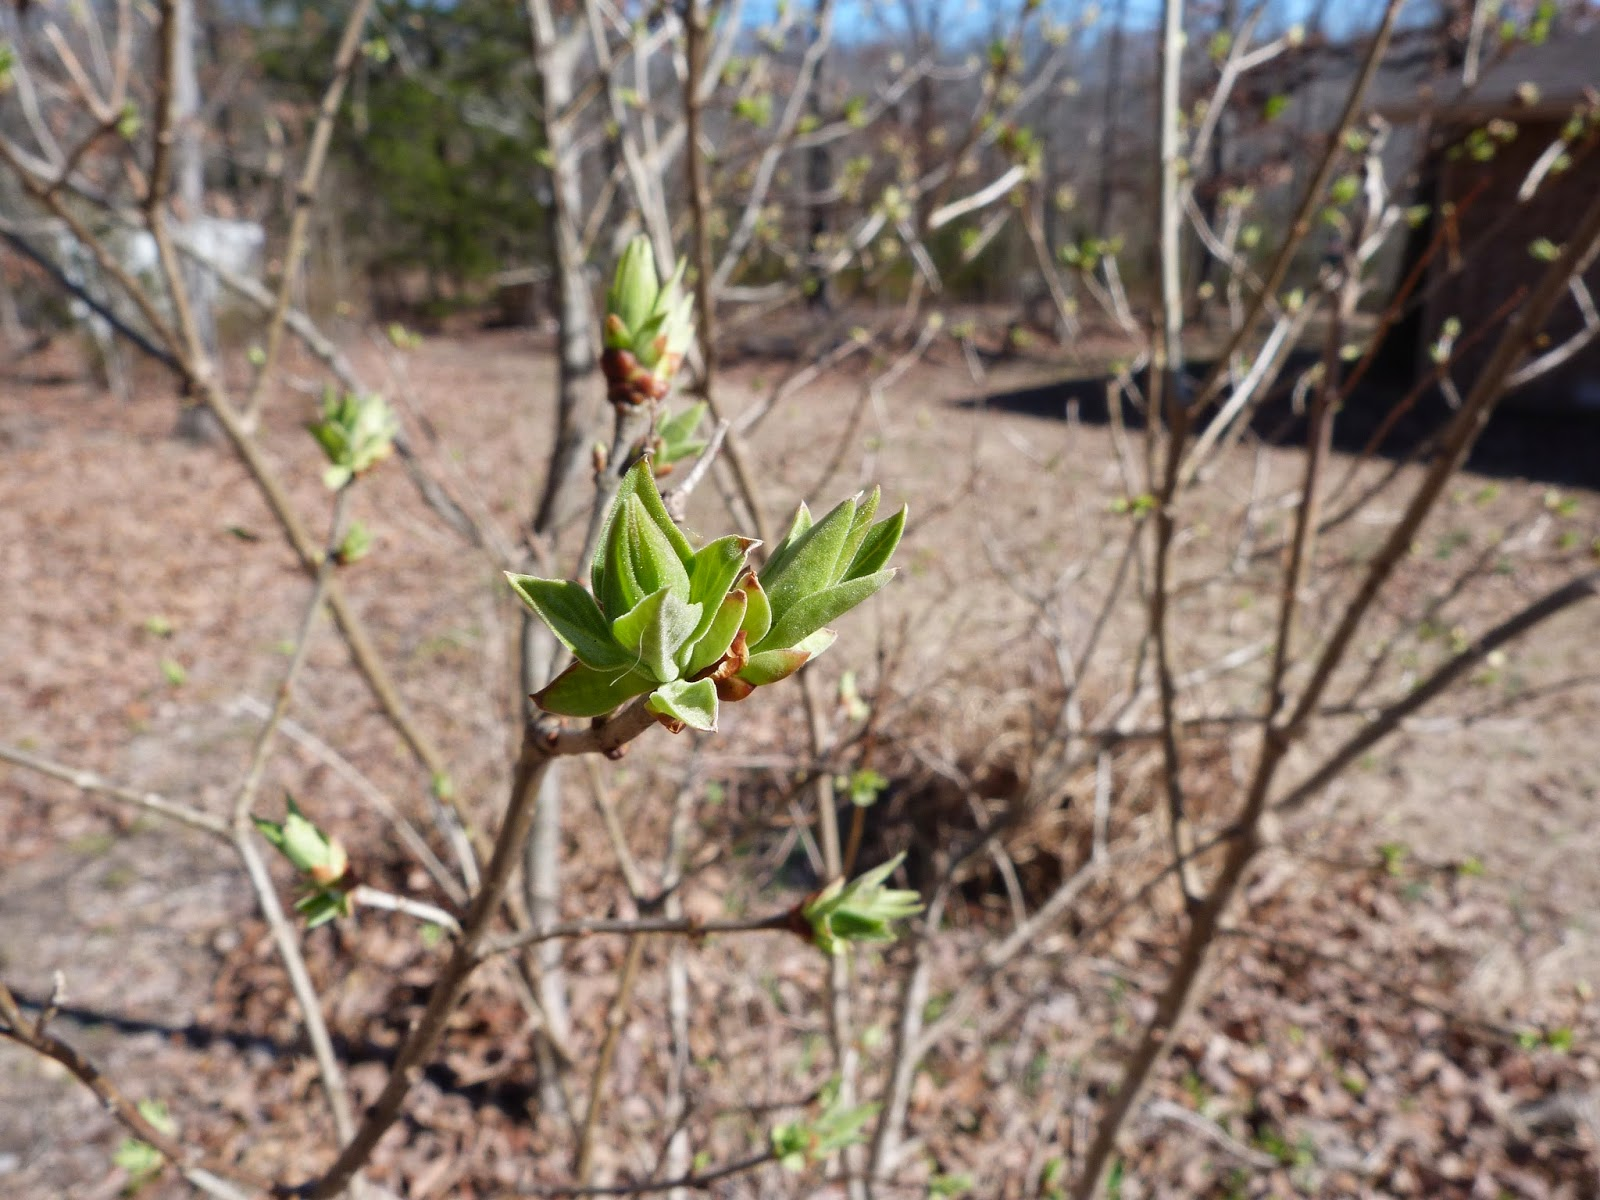 chmusings: lilacs are getting their leaves